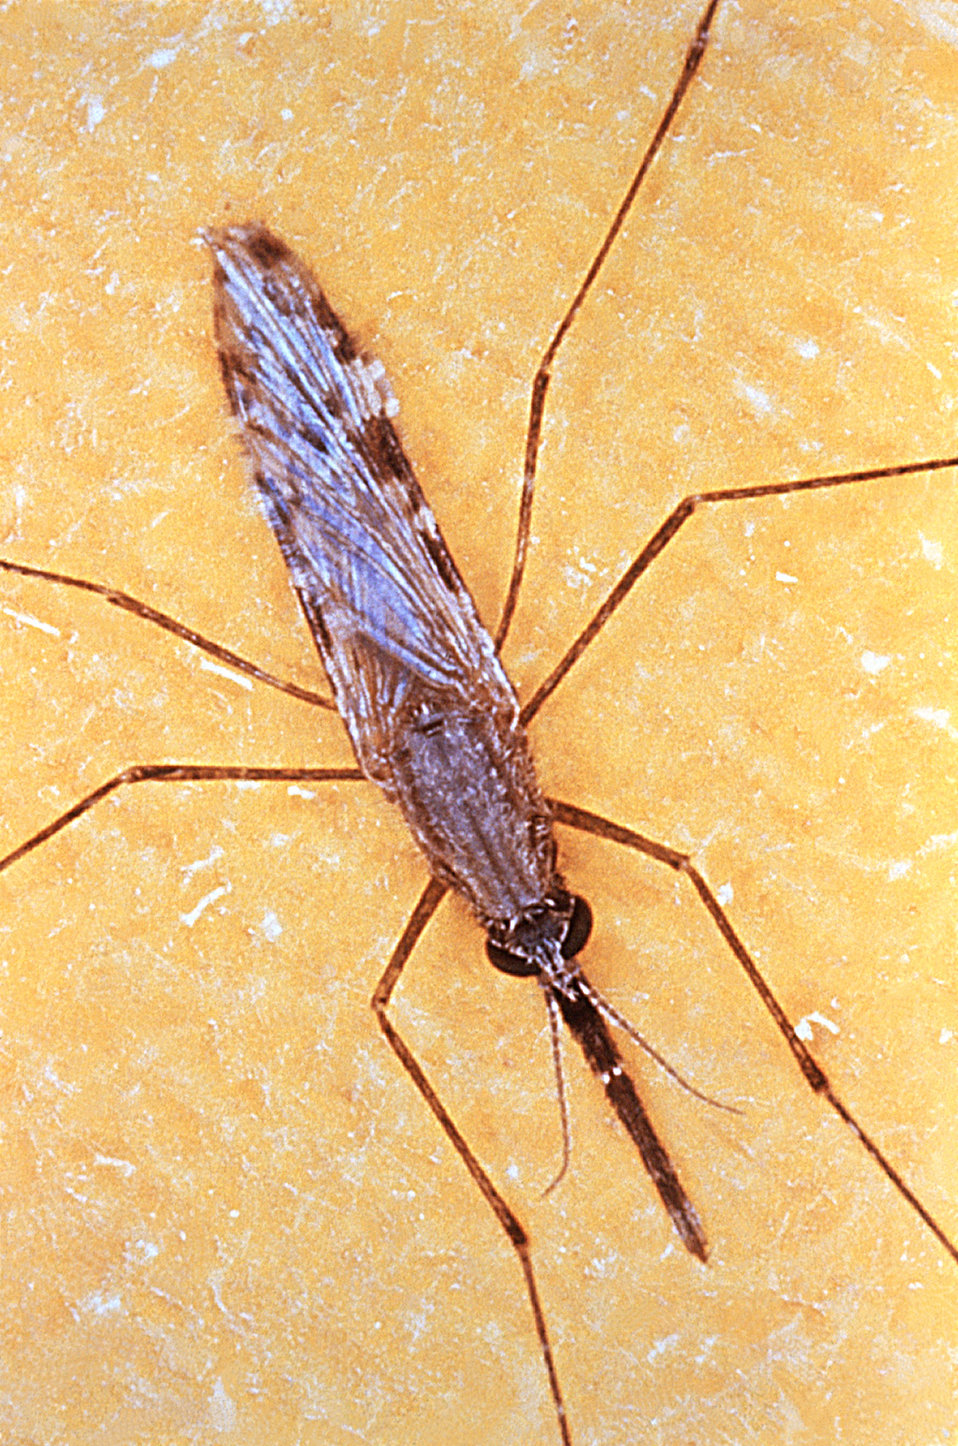 This is an Anopheles gambiae mosquito, which is a known vector for the malarial parasite.